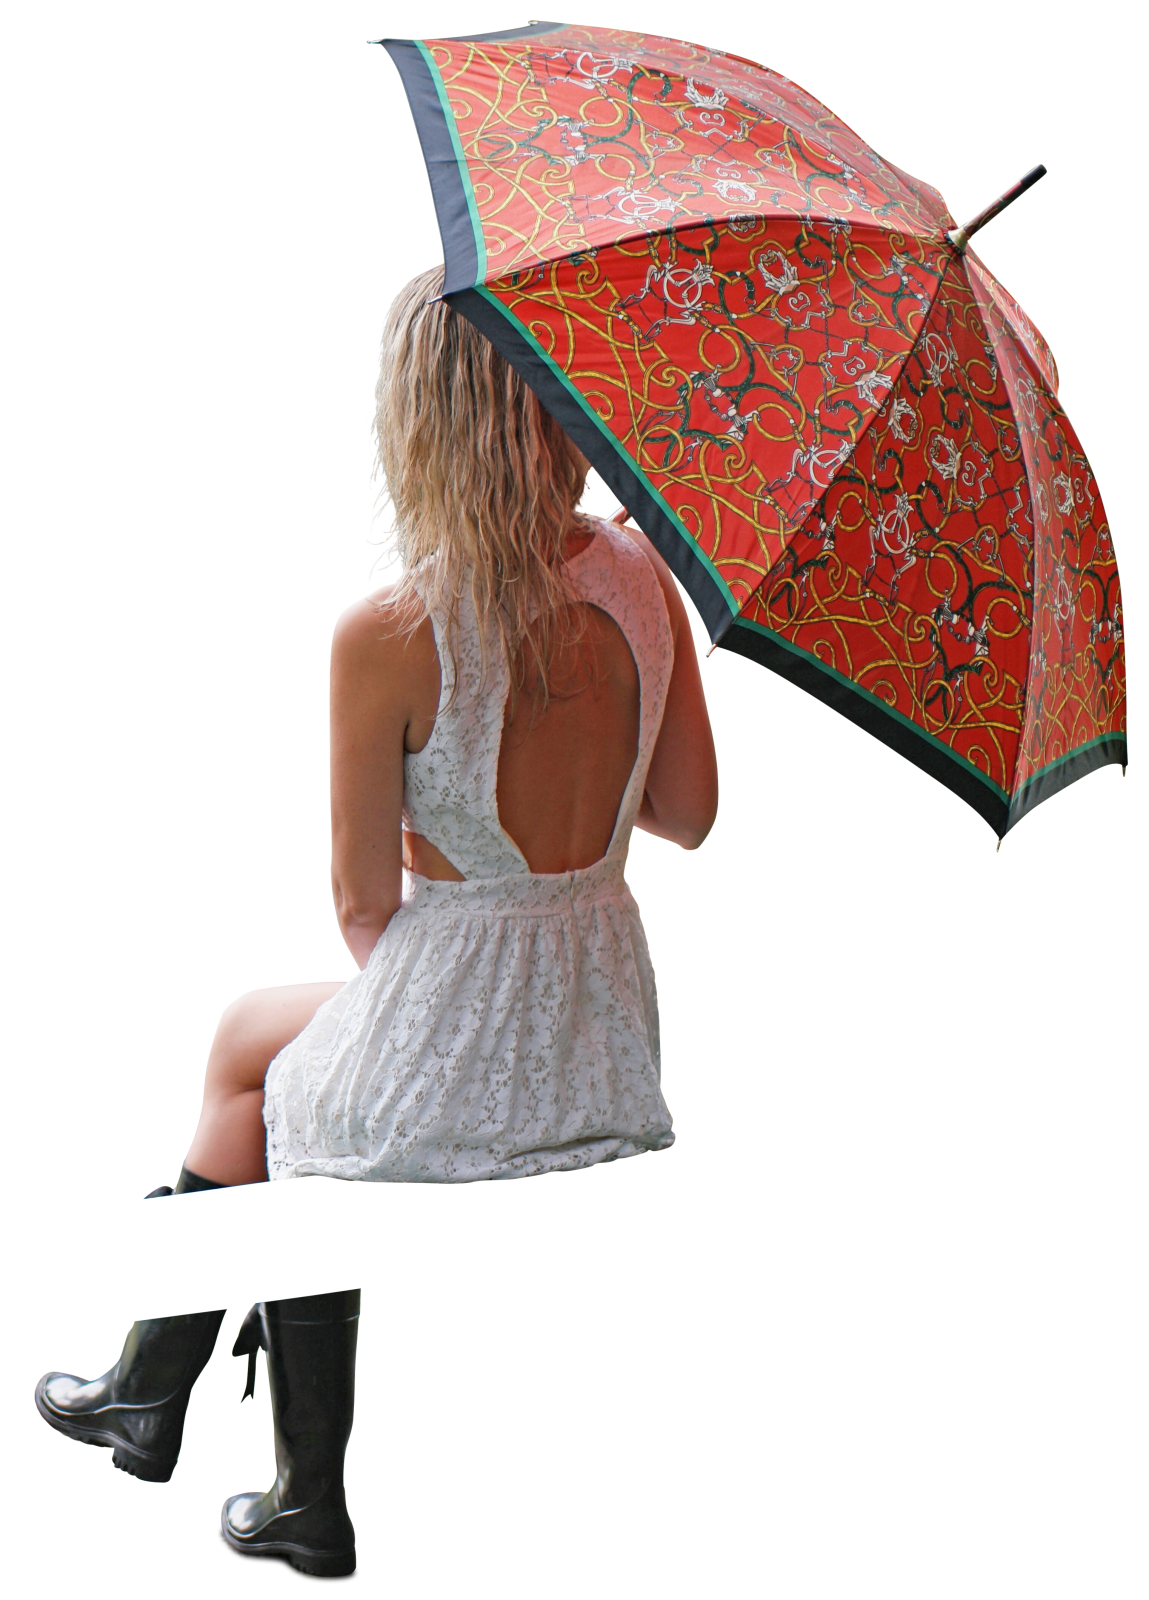 Woman in dress sitting with colourfull umbrella by